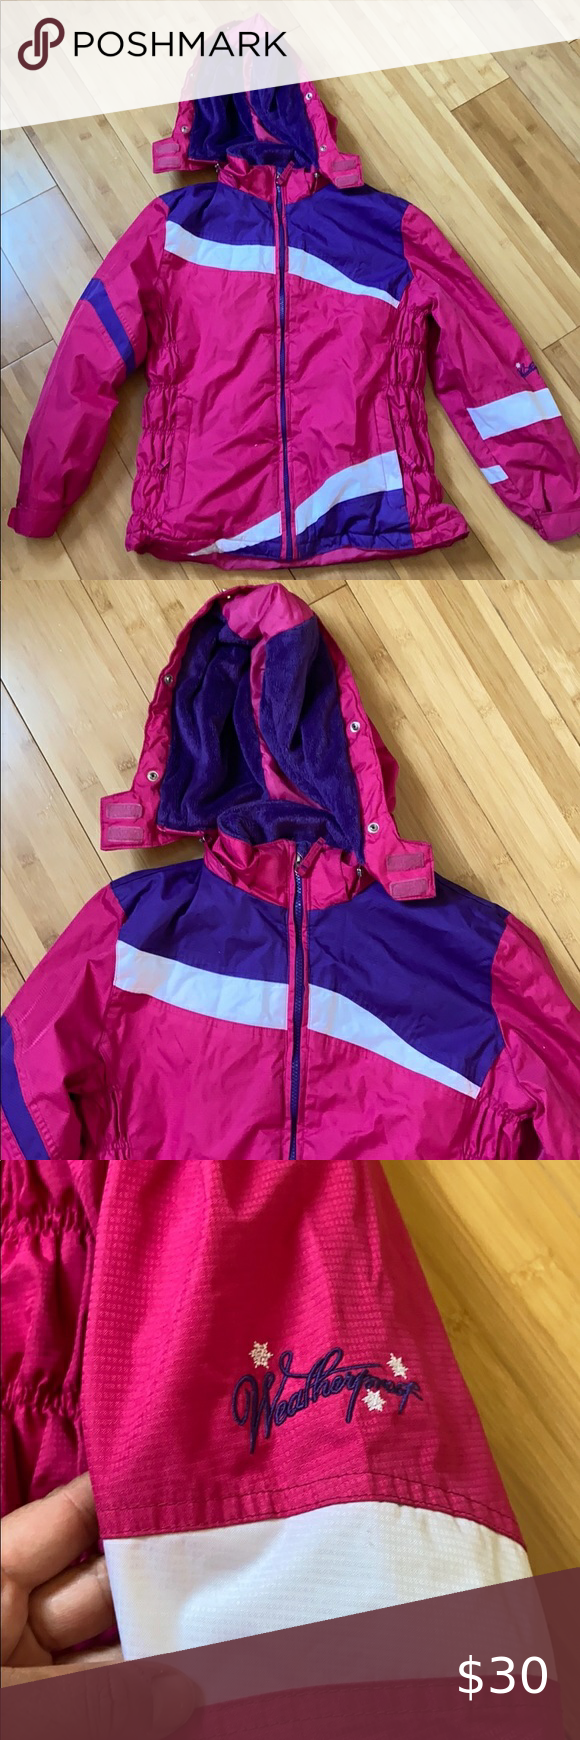 Authentic Weatherproof Winter Jacket Excellent Used Condition Authentic Weatherproof Pink And P Toddler Winter Jackets Girls Winter Jackets Boys Winter Jackets [ 1740 x 580 Pixel ]